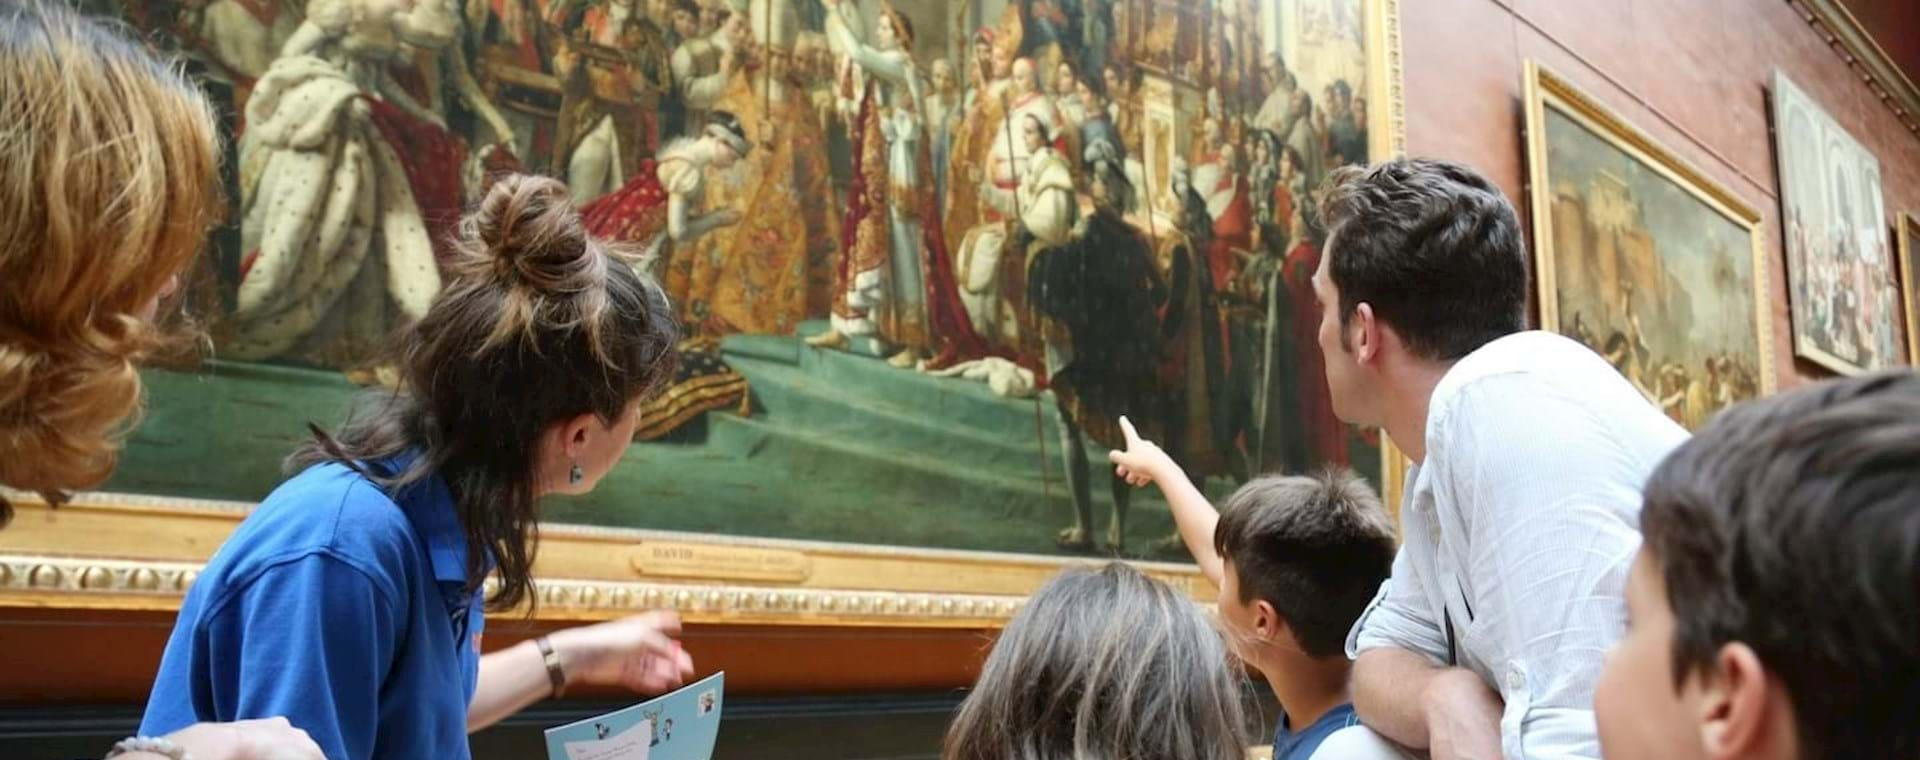 Louvre Highlights for Families